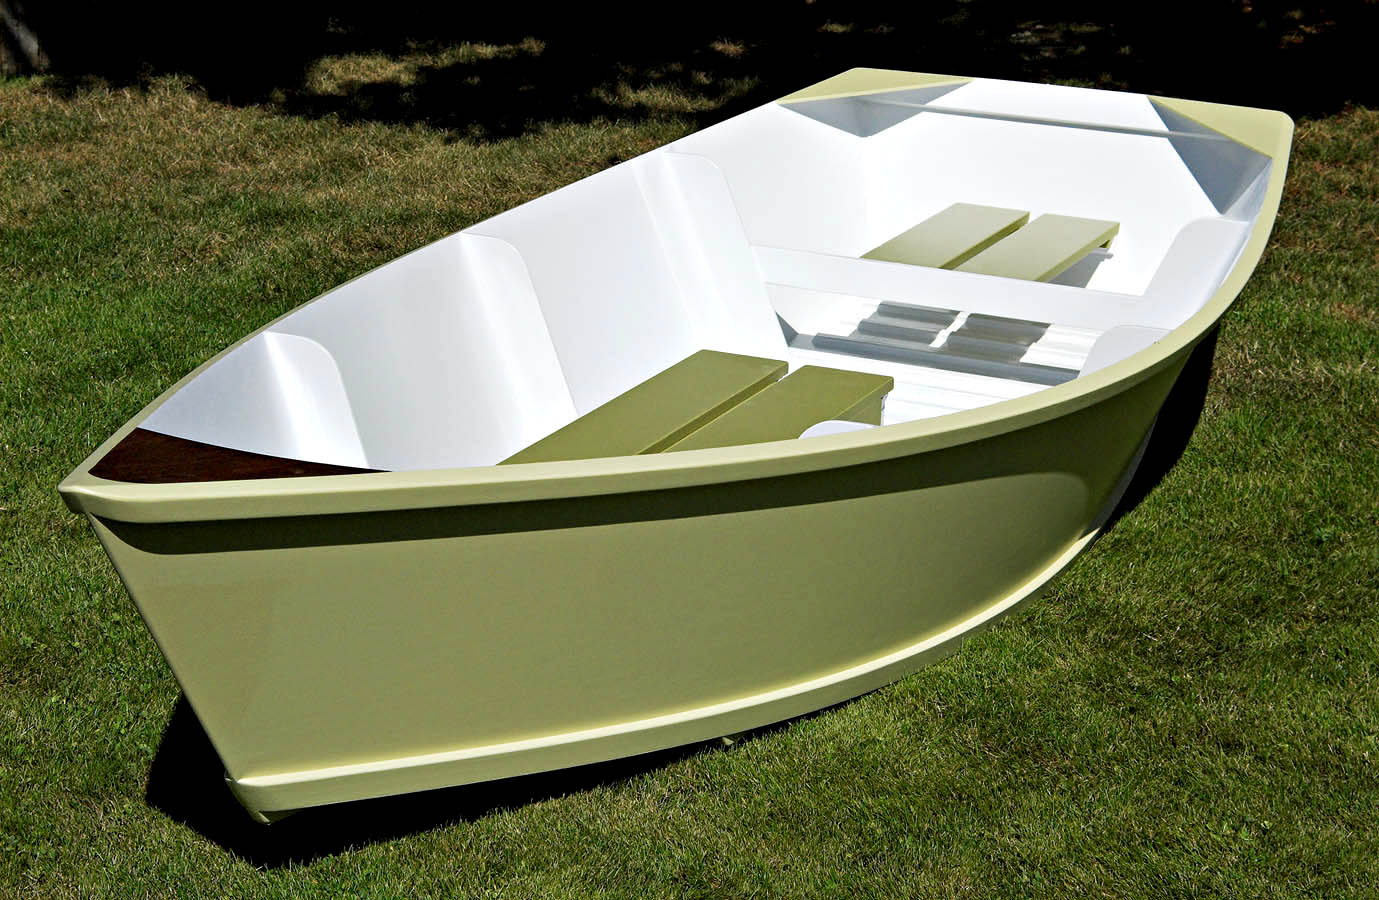 ... flat bottom boat hull design 16 foot wooden flat bottom jon boat plans